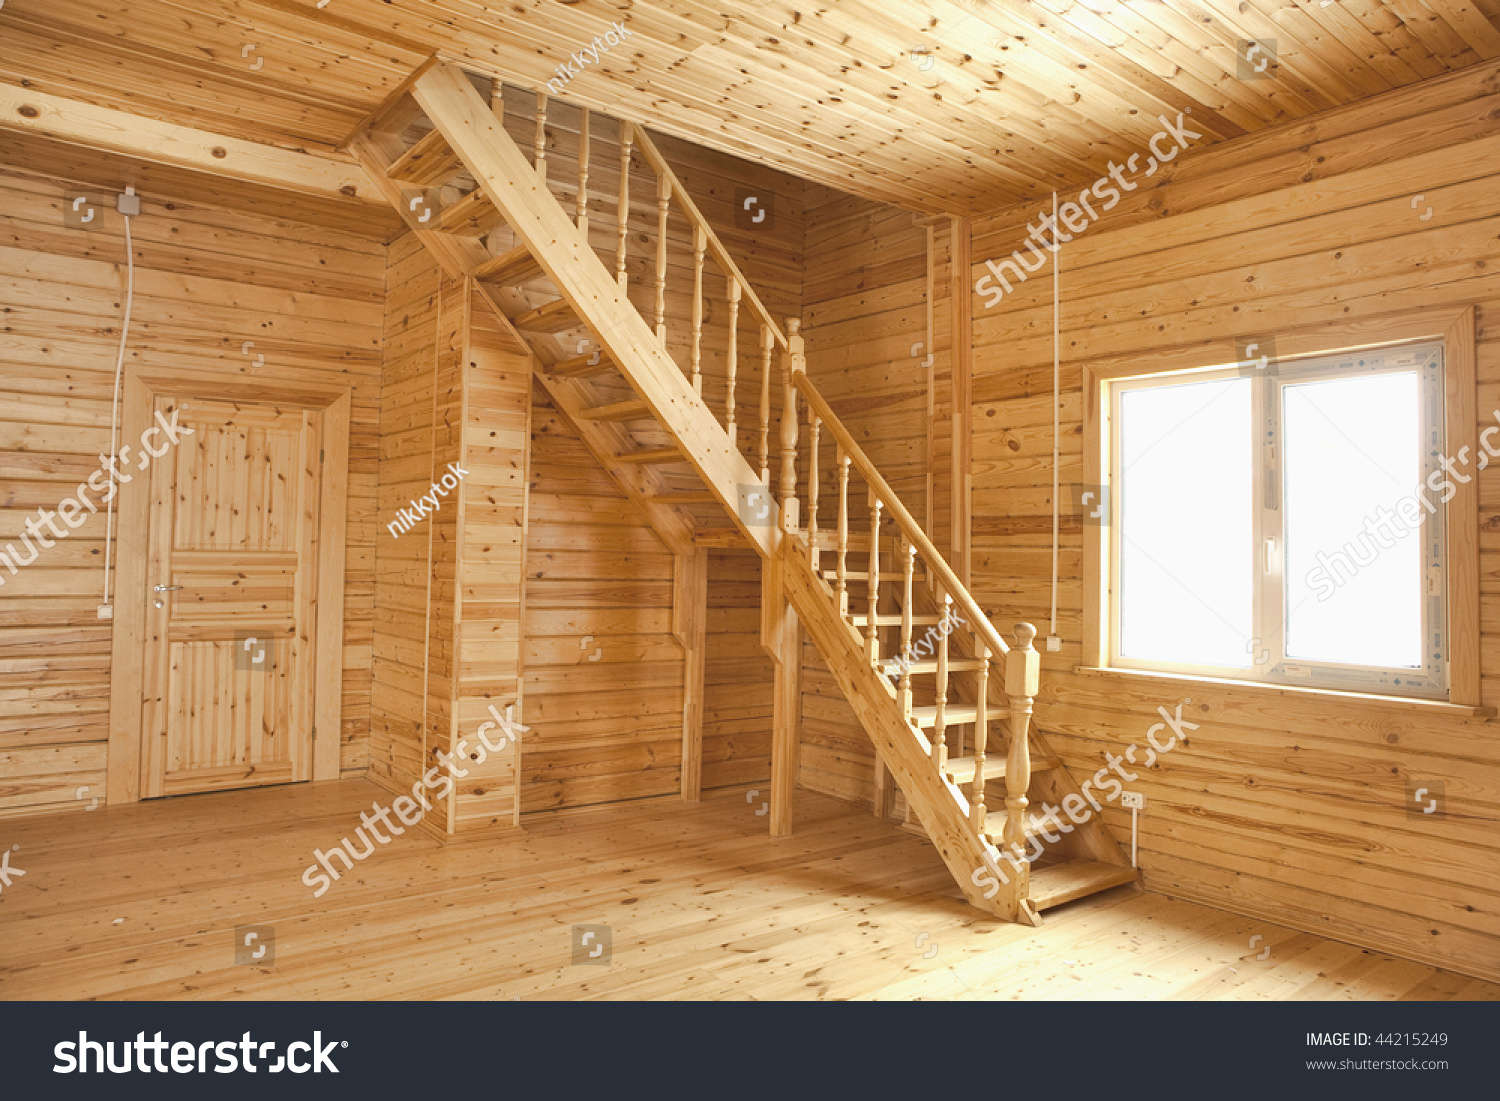 Wooden House Interior Stock Photo 44215249 Shutterstock